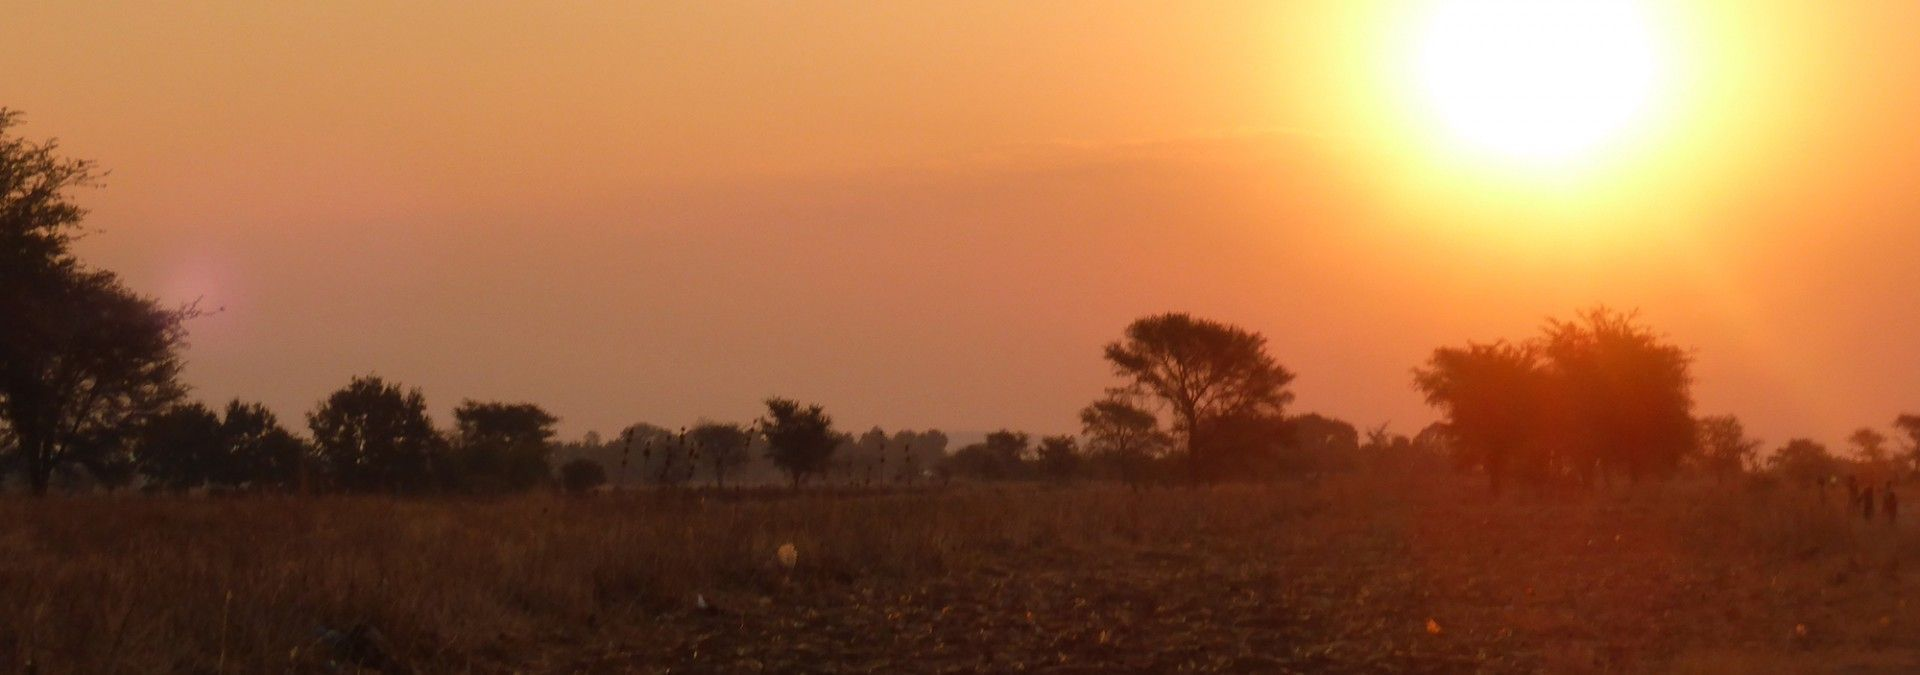 Sunset_Zambia.jpg